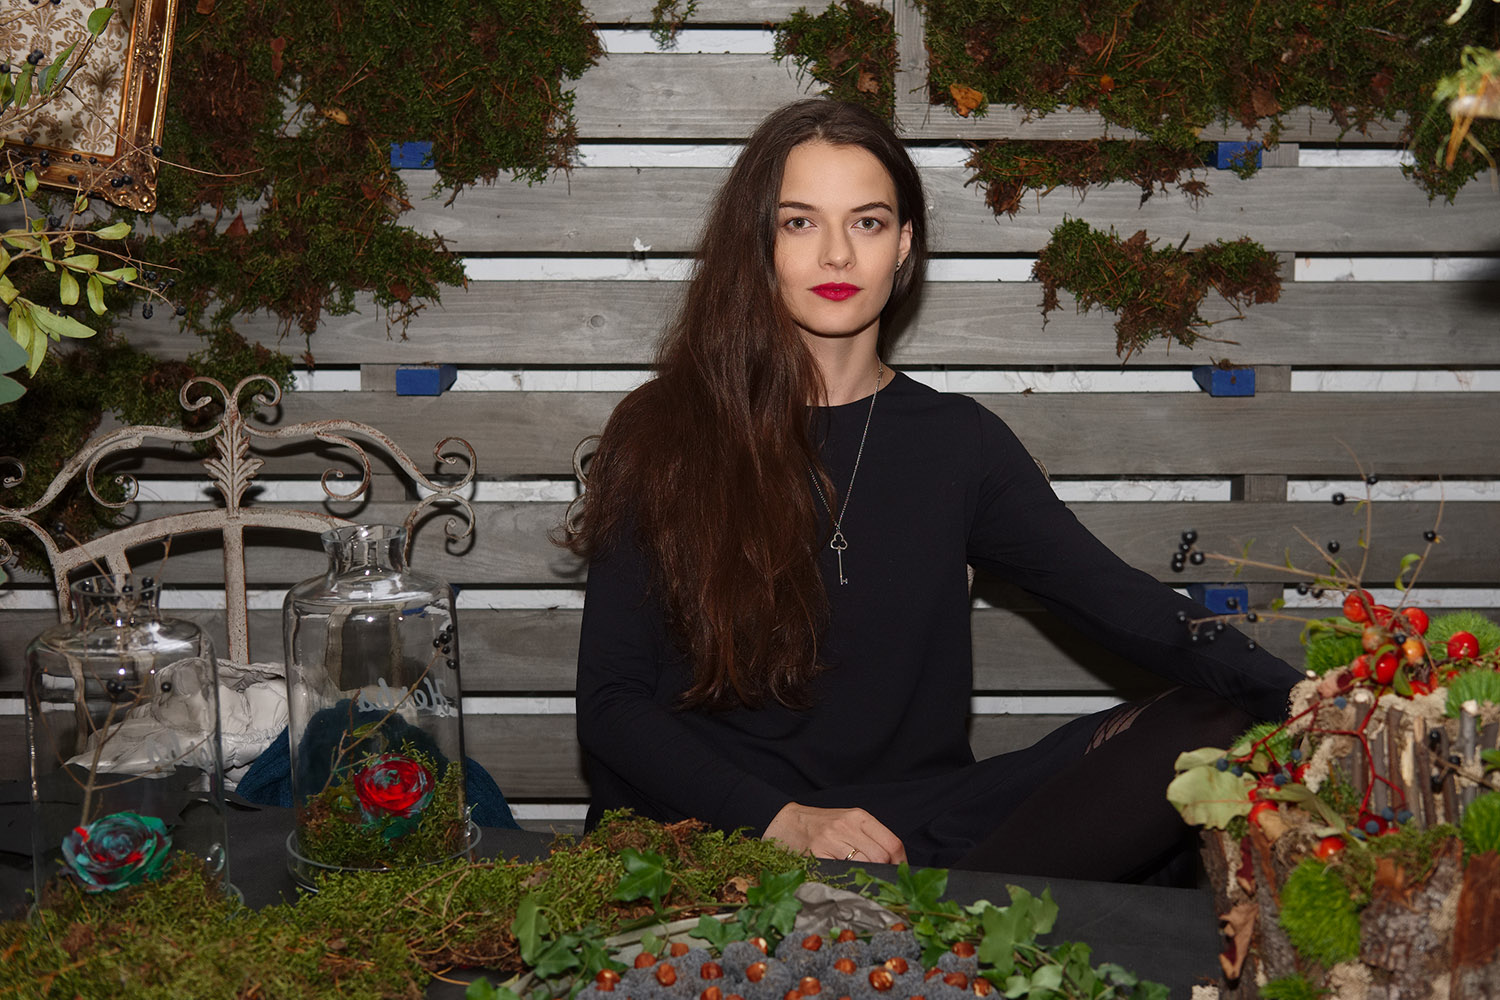 Attractive lady sitting behind herbal table with sweets